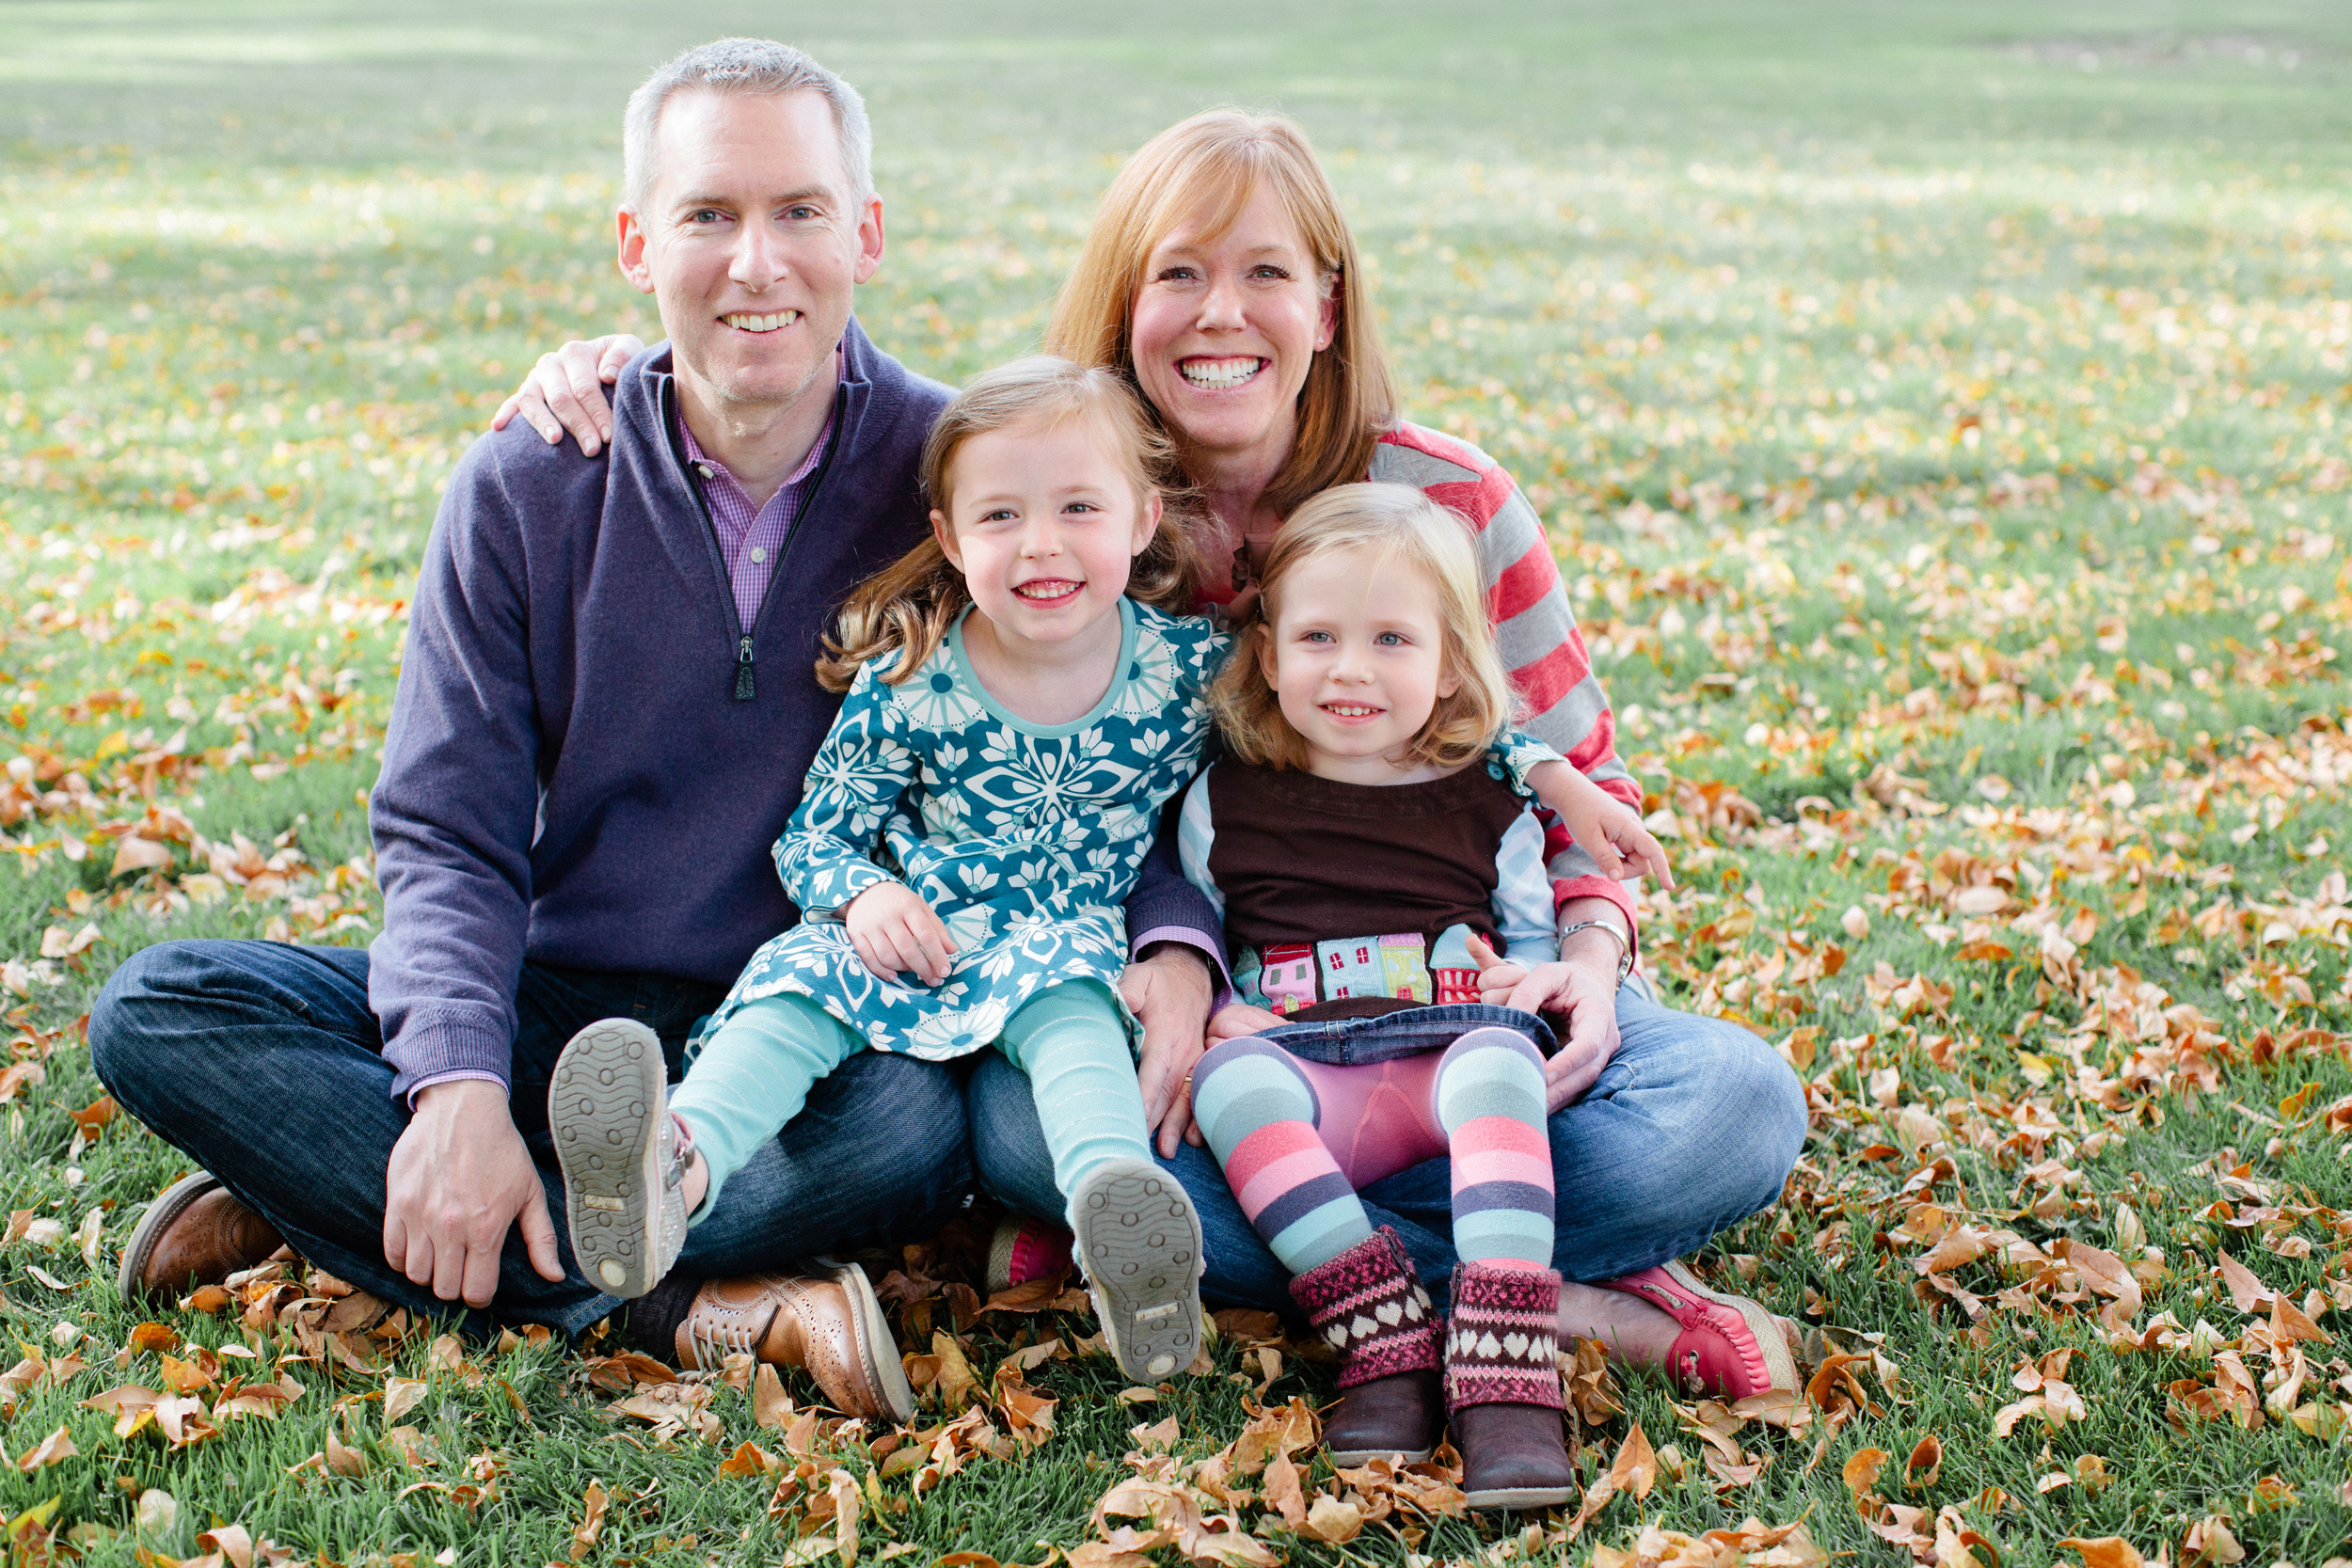 Denver_Fall_FamilySession_RobinCainPhotography_10.jpg